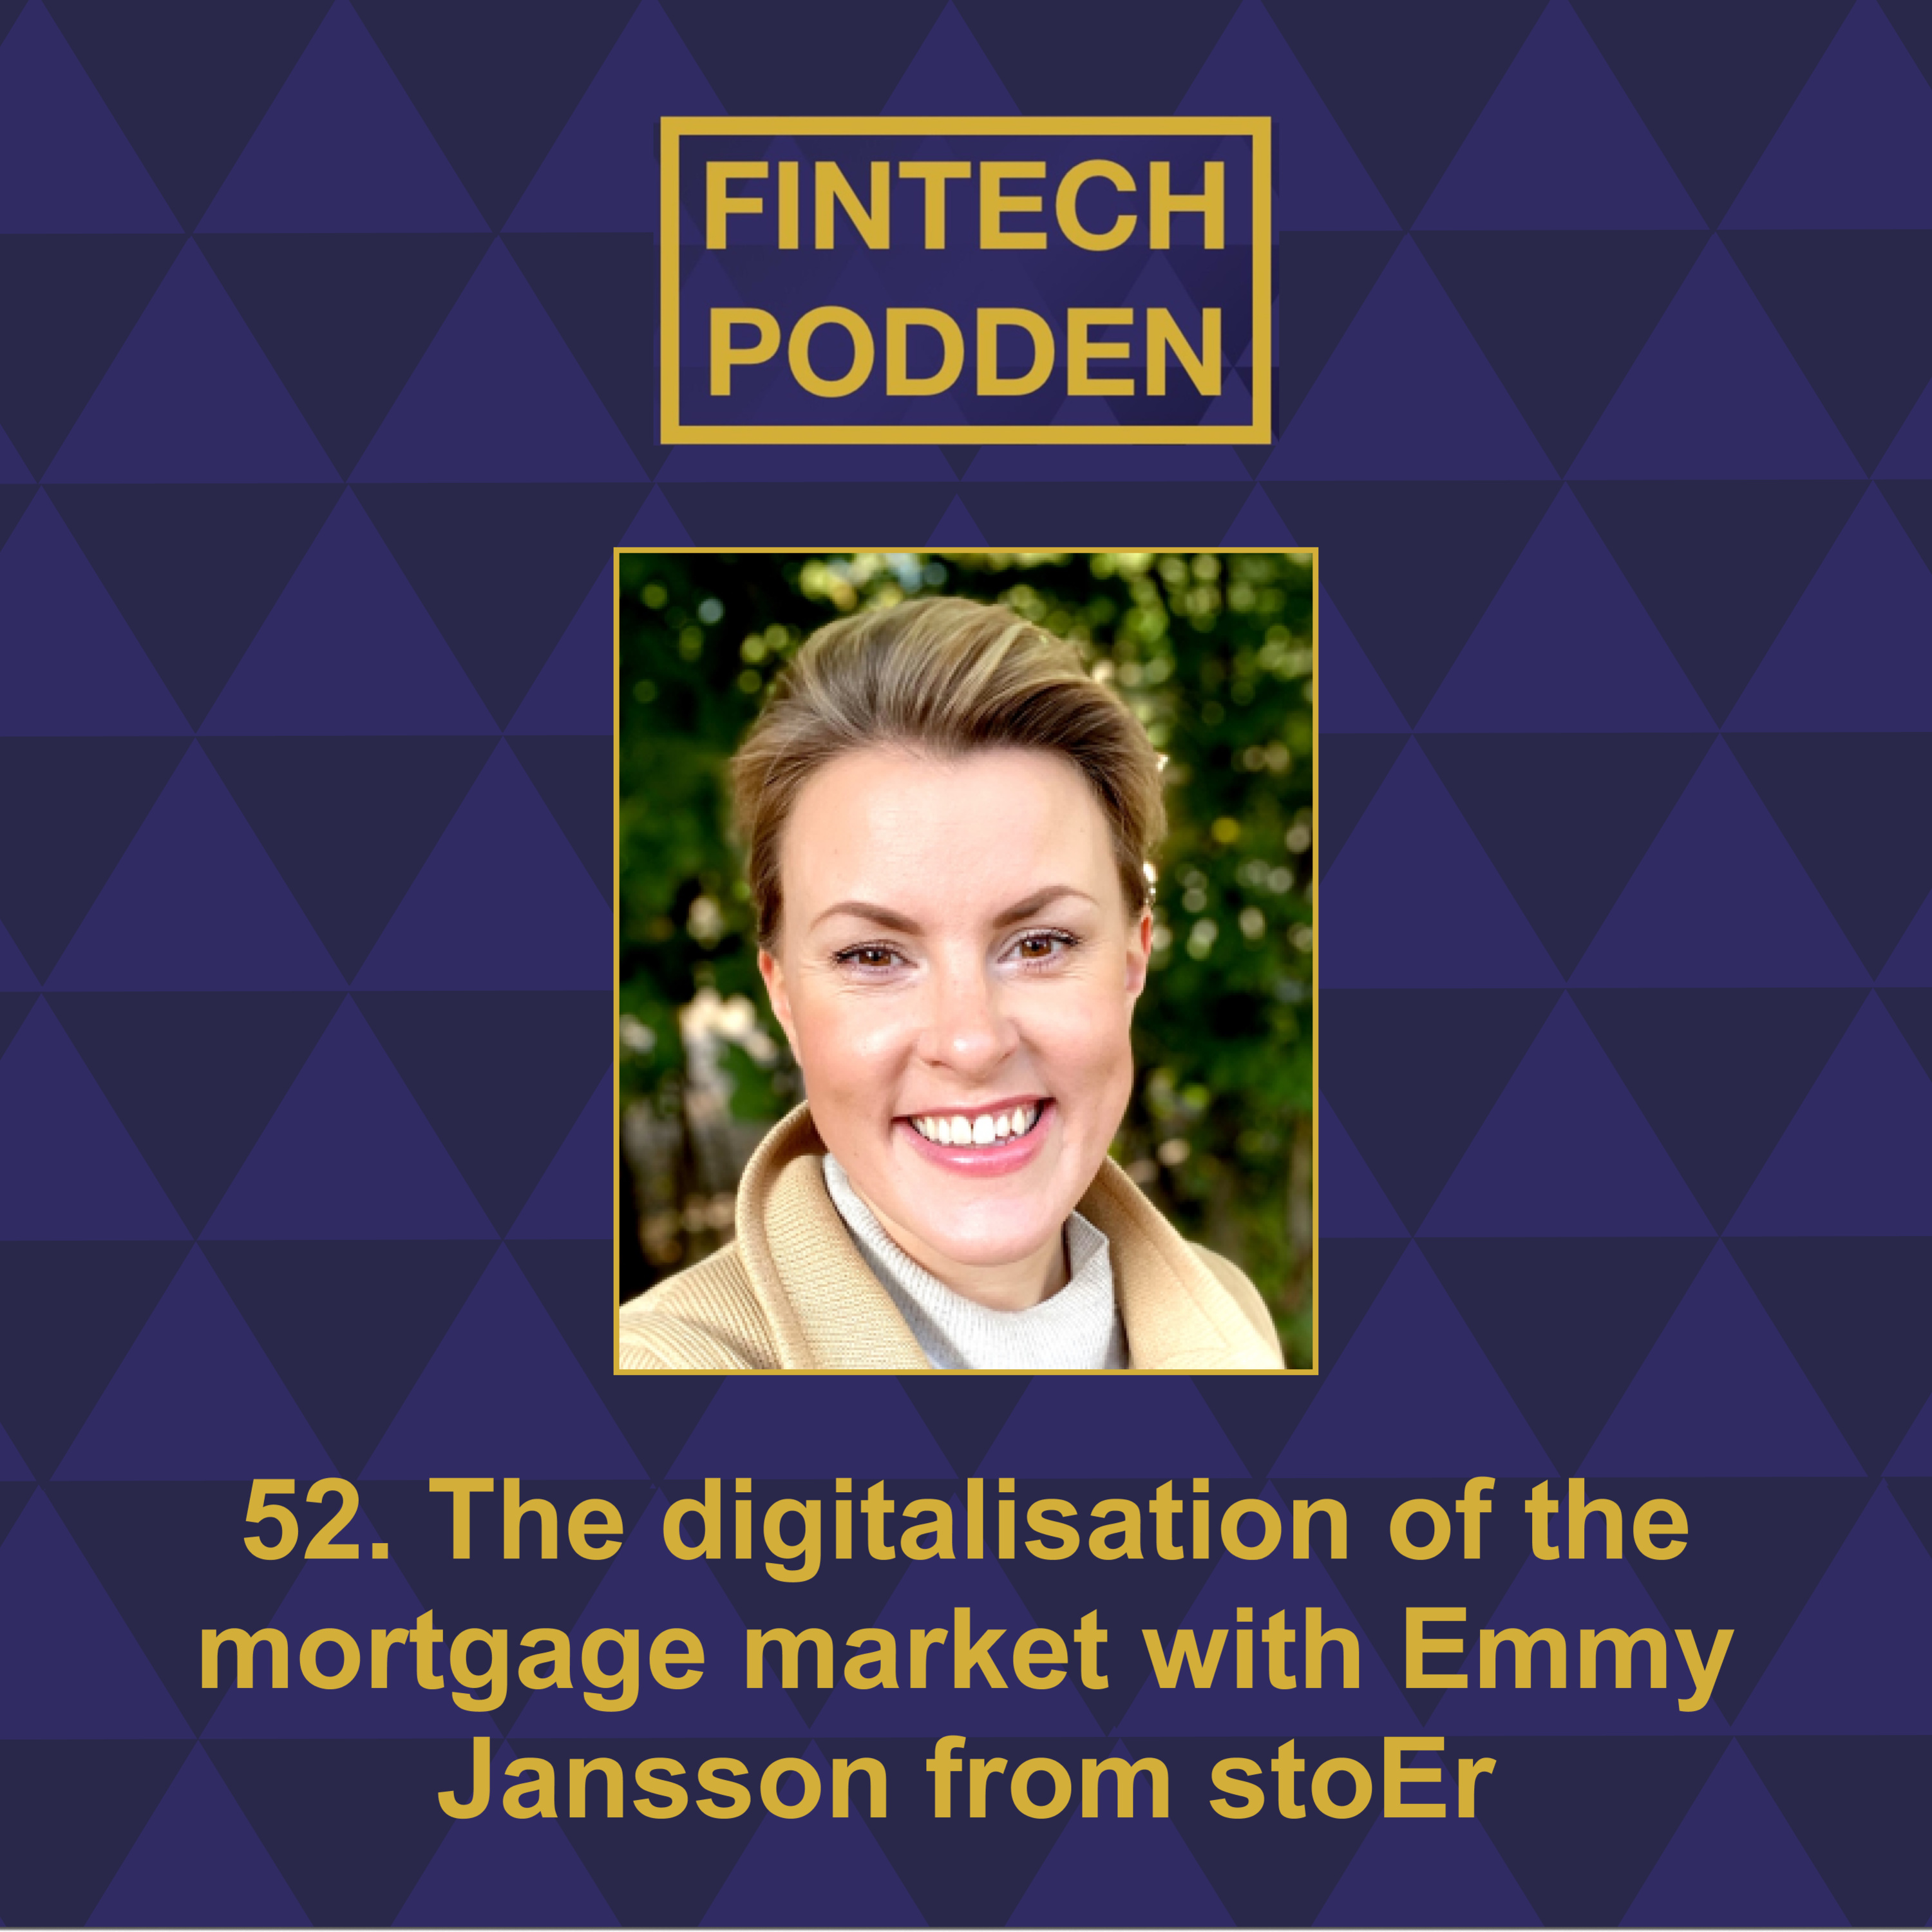 52. The digitalisation of the mortgage market with Emmy Jansson from stoEr